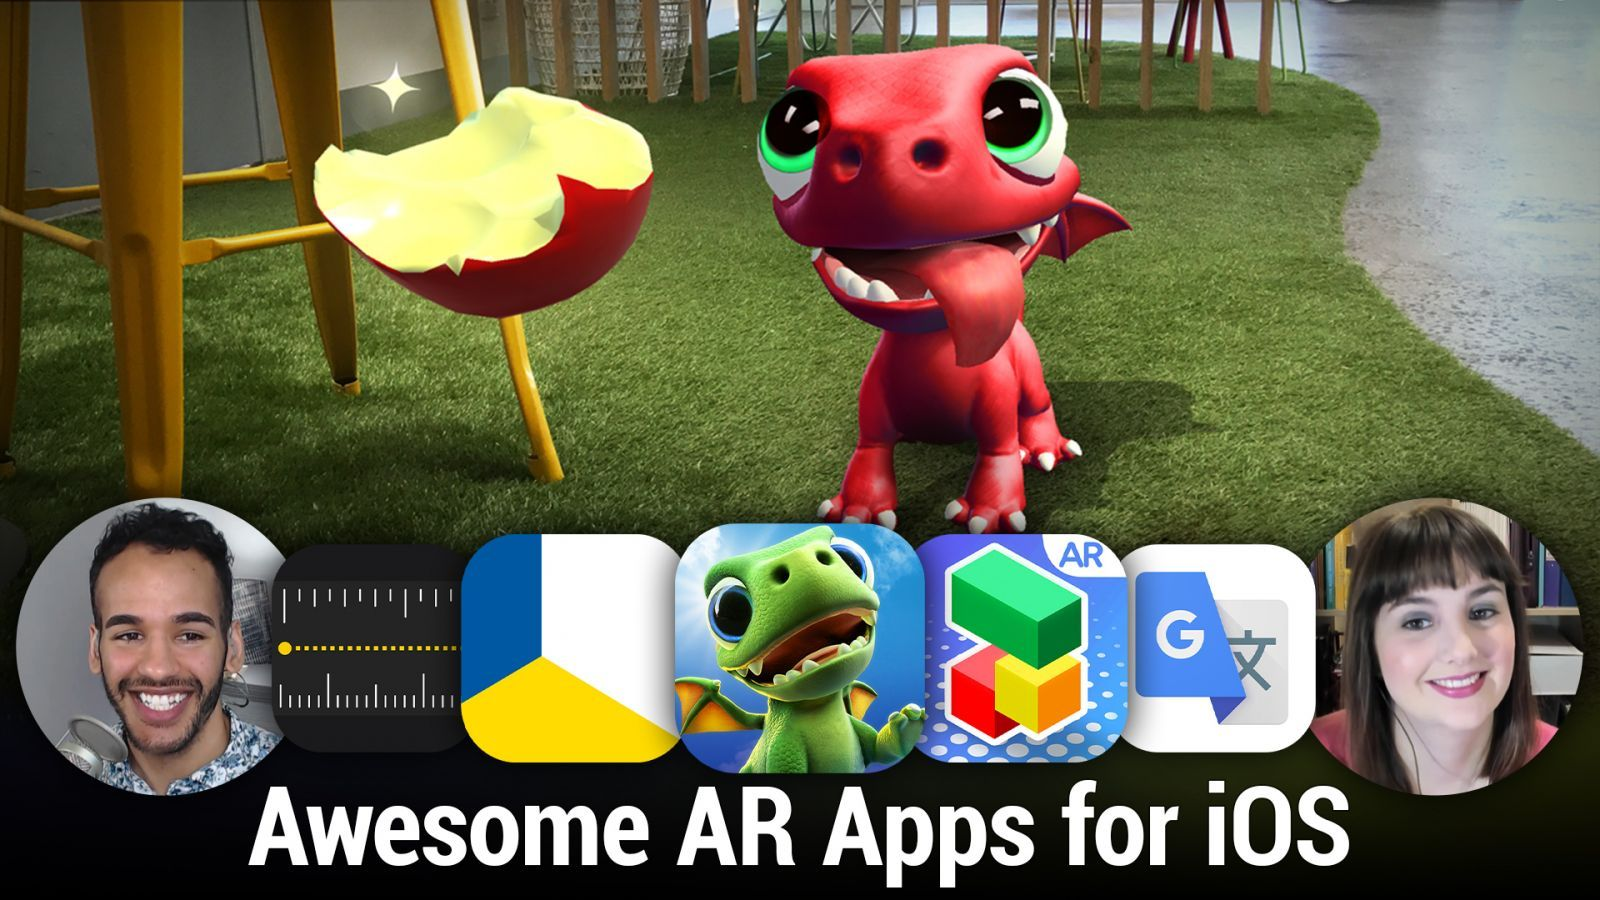 iOS 542: Awesome AR Apps for iOS - Measure, AR Dragon, Playground AR, IKEA Place, and more.